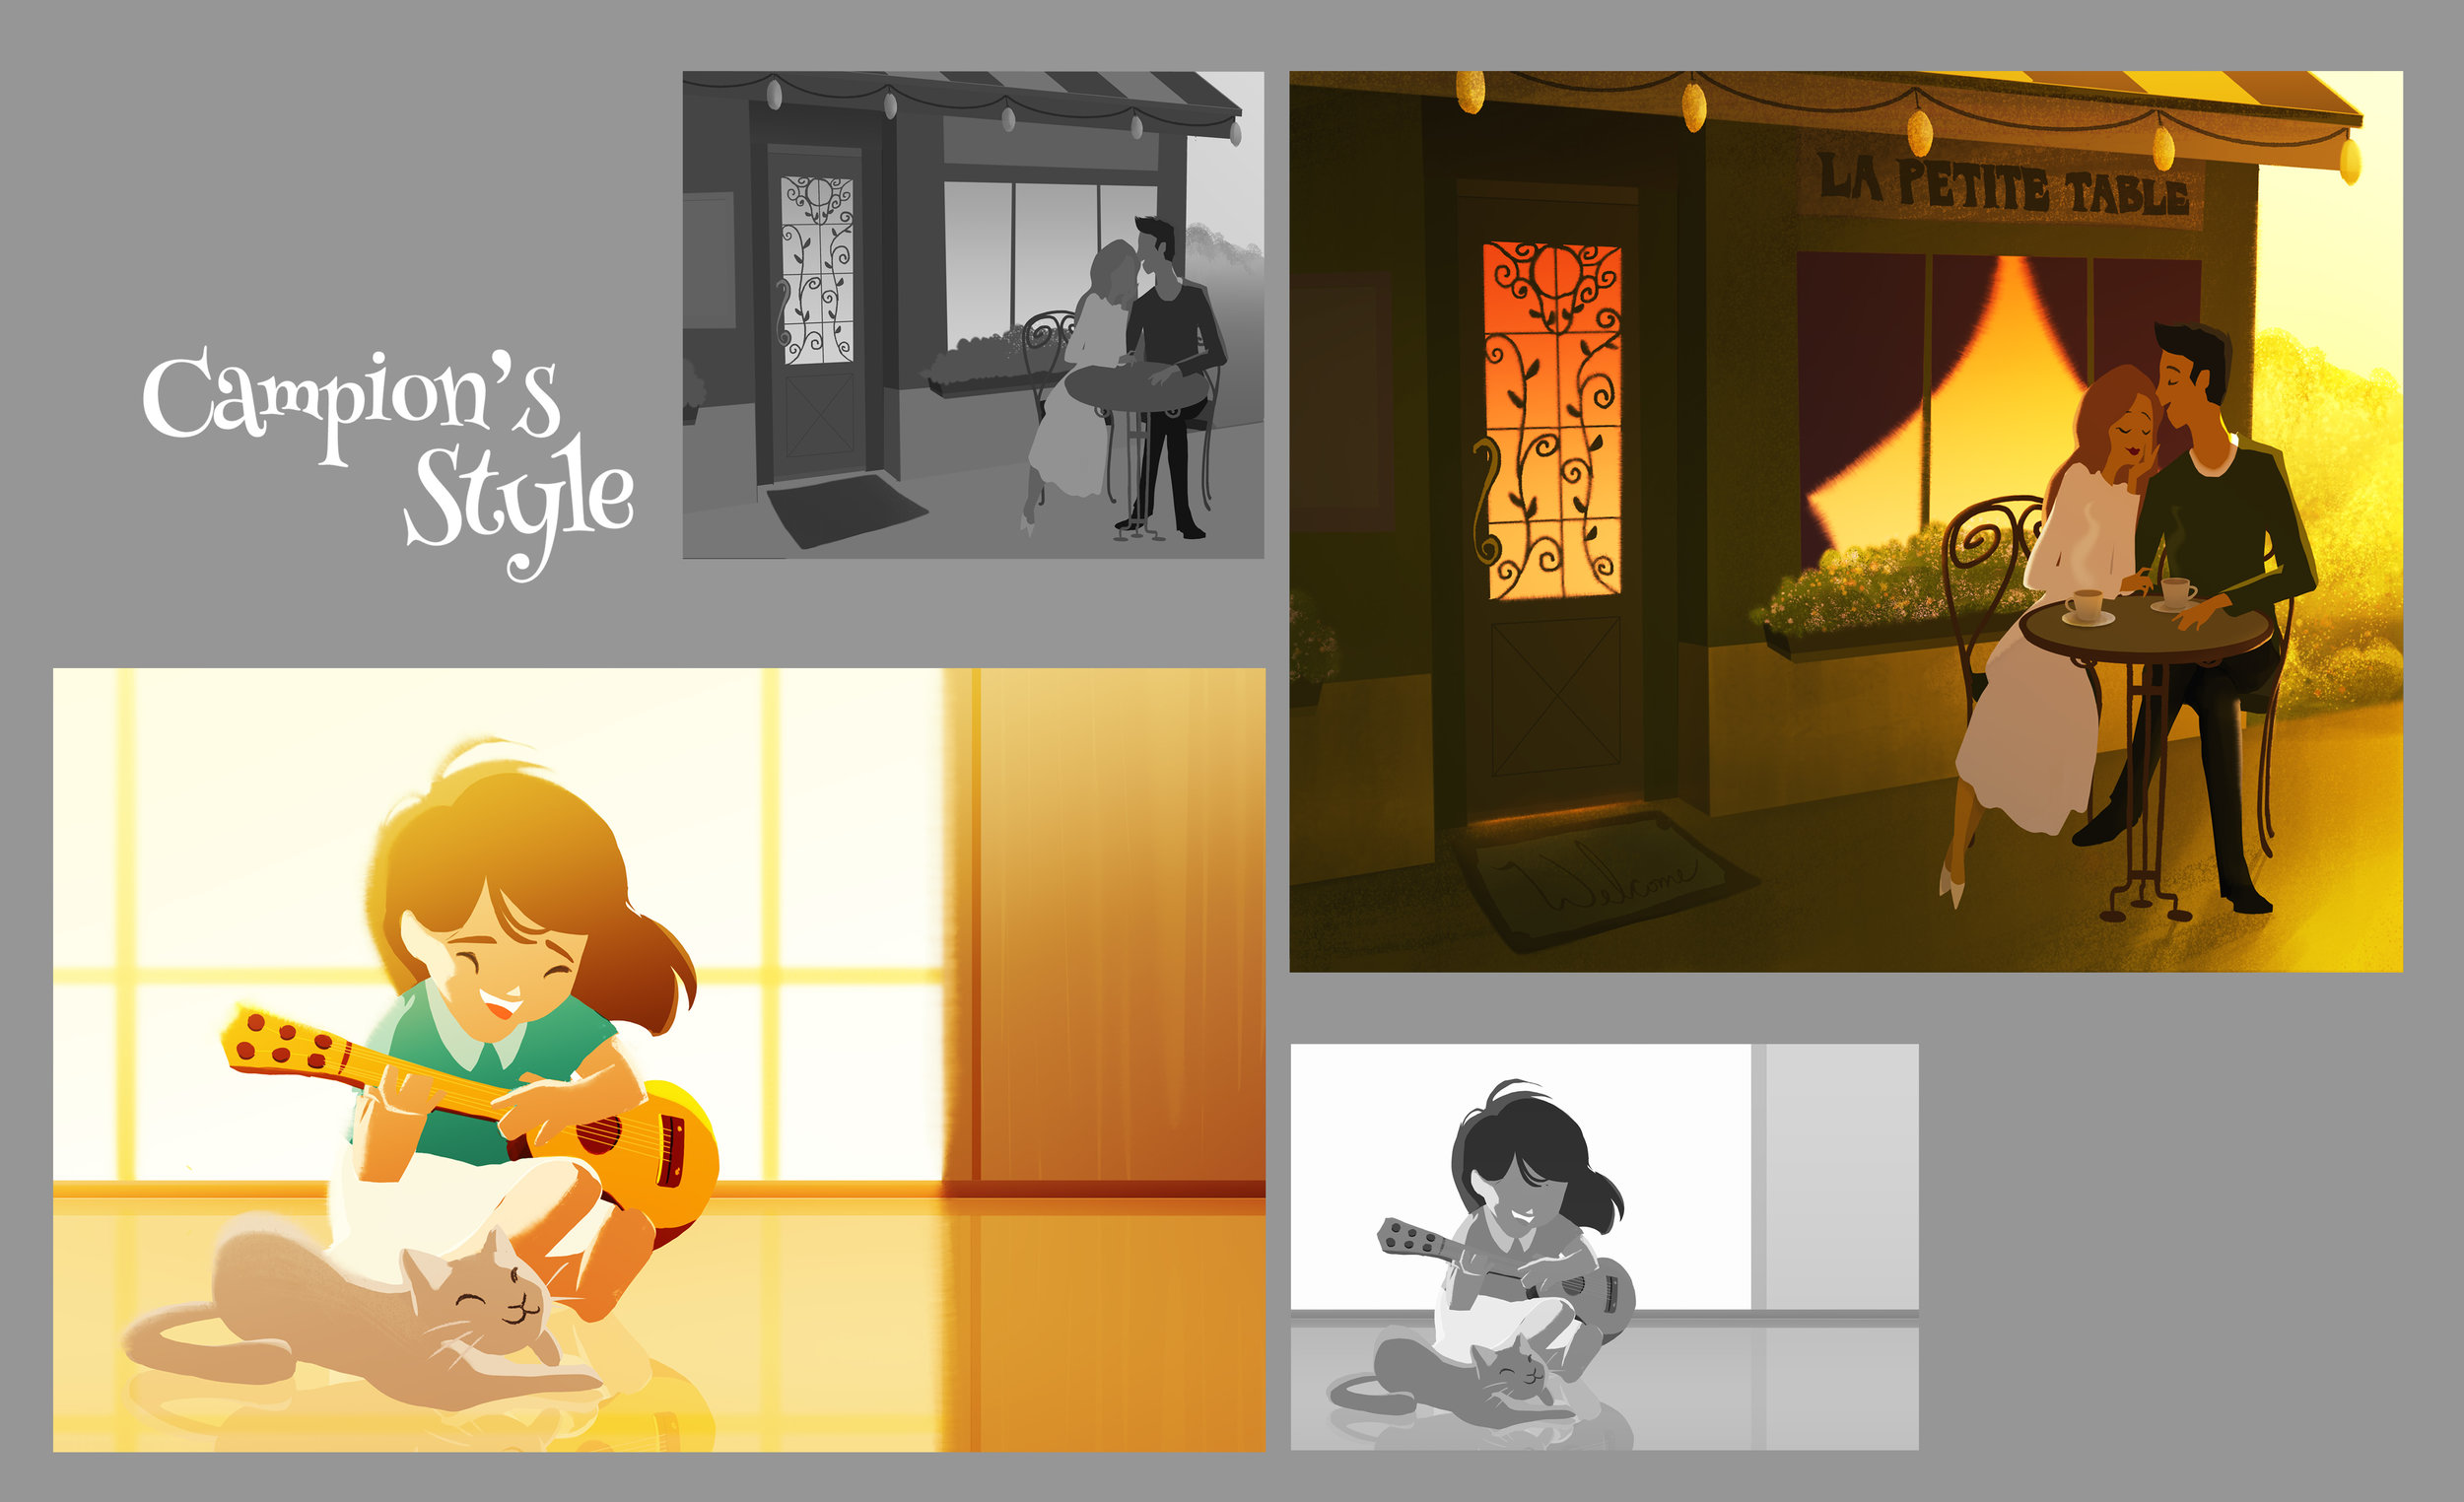 Inspired by the style of Pascal Campion